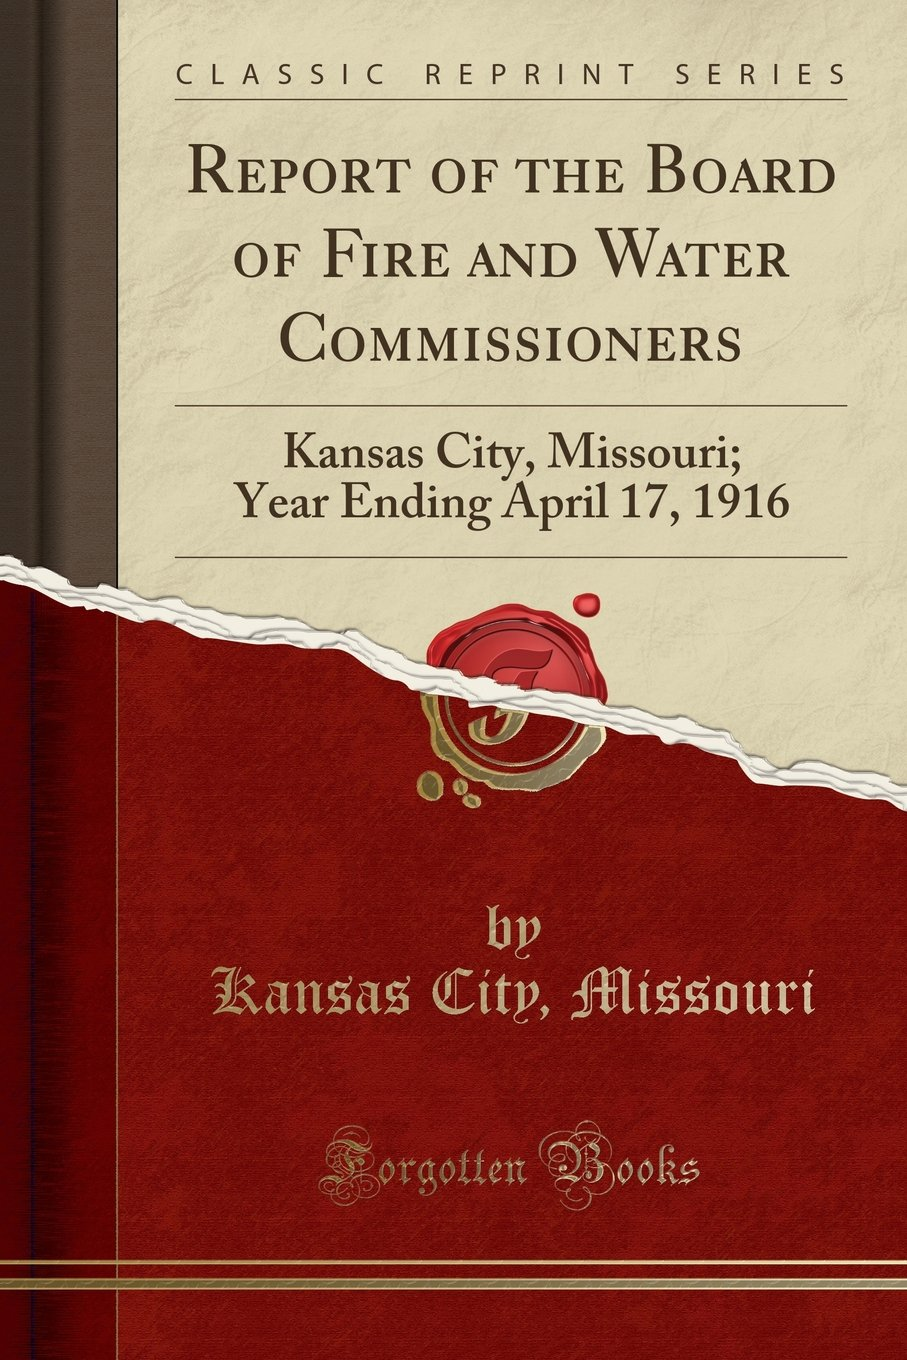 Download Report of the Board of Fire and Water Commissioners: Kansas City, Missouri; Year Ending April 17, 1916 (Classic Reprint) PDF